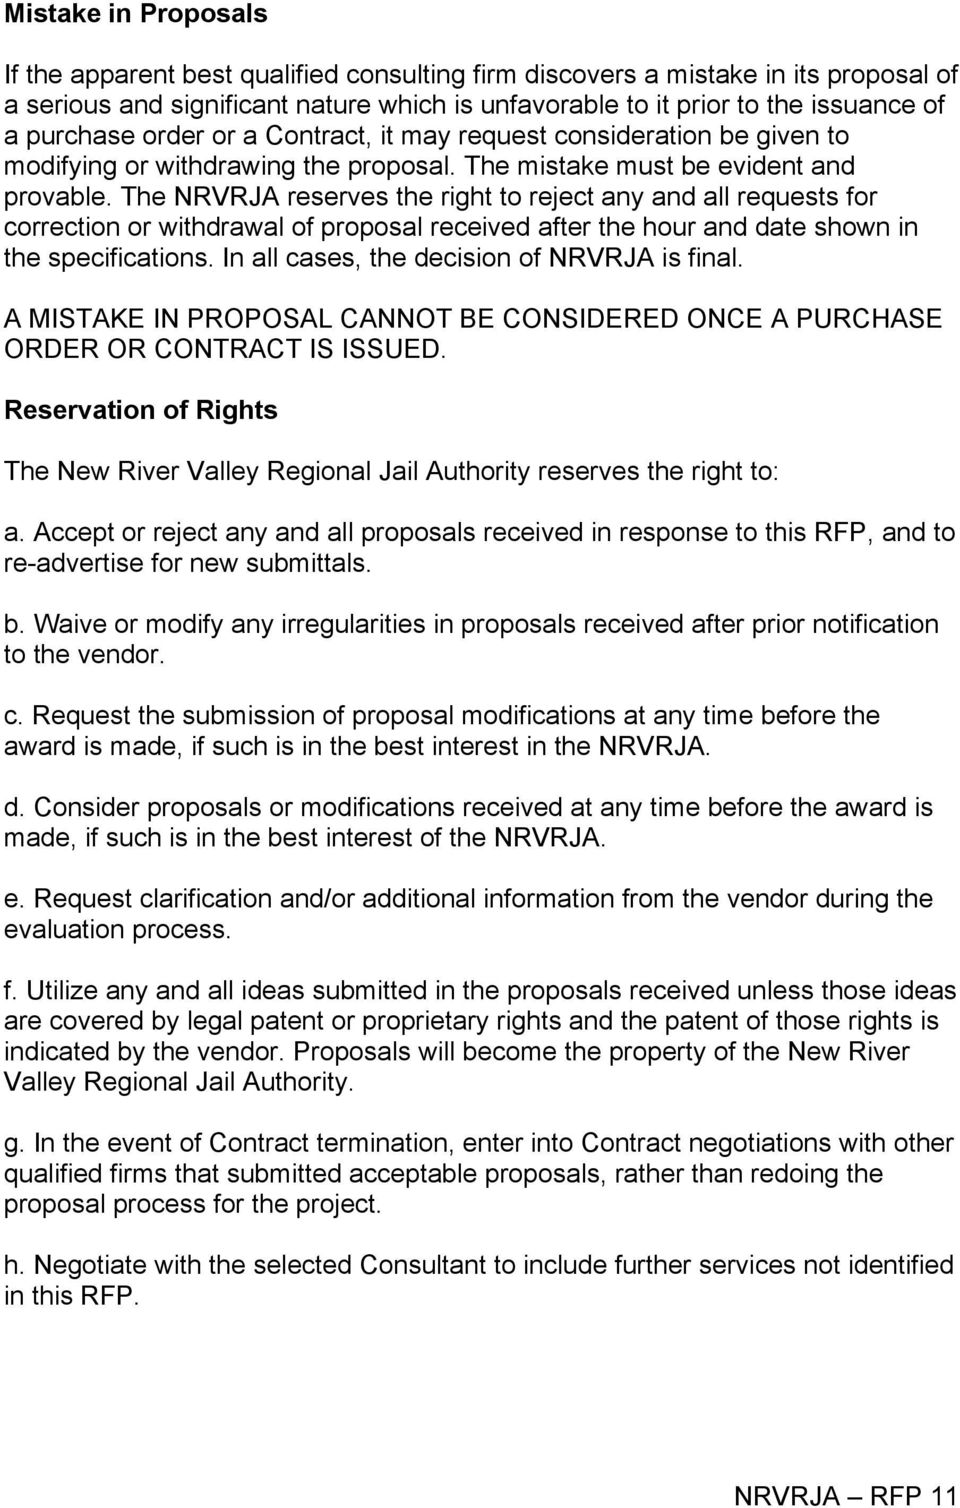 The NRVRJA reserves the right to reject any and all requests for correction or withdrawal of proposal received after the hour and date shown in the specifications.